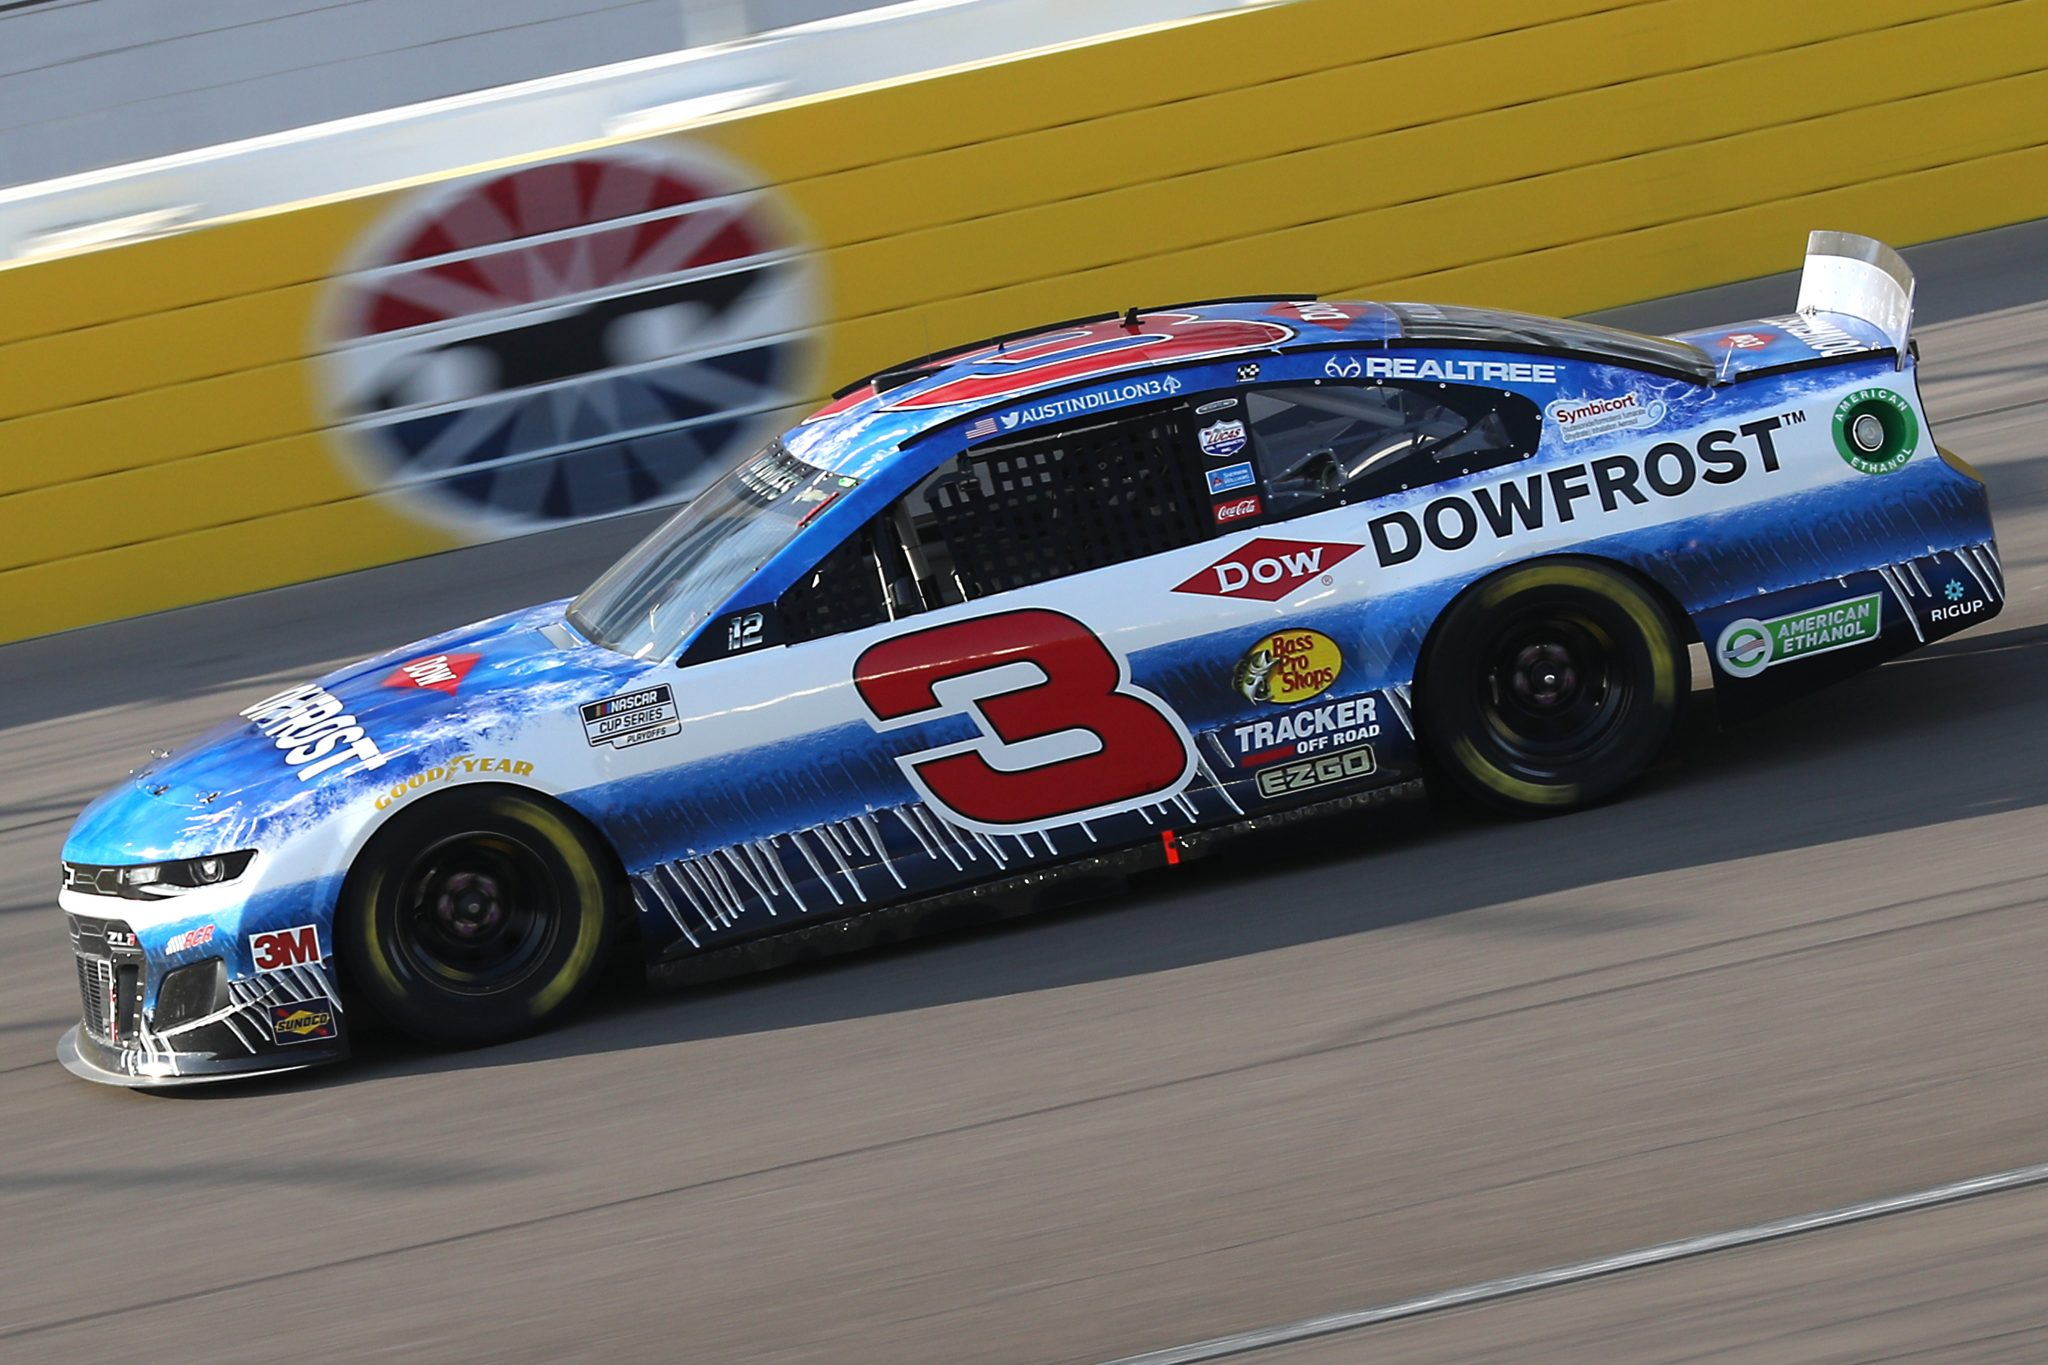 LAS VEGAS, NEVADA - SEPTEMBER 27: Austin Dillon, driver of the #3 DOWFROST Chevrolet, drives during the NASCAR Cup Series South Point 400 at Las Vegas Motor Speedway on September 27, 2020 in Las Vegas, Nevada. (Photo by Chris Graythen/Getty Images) | Getty Images